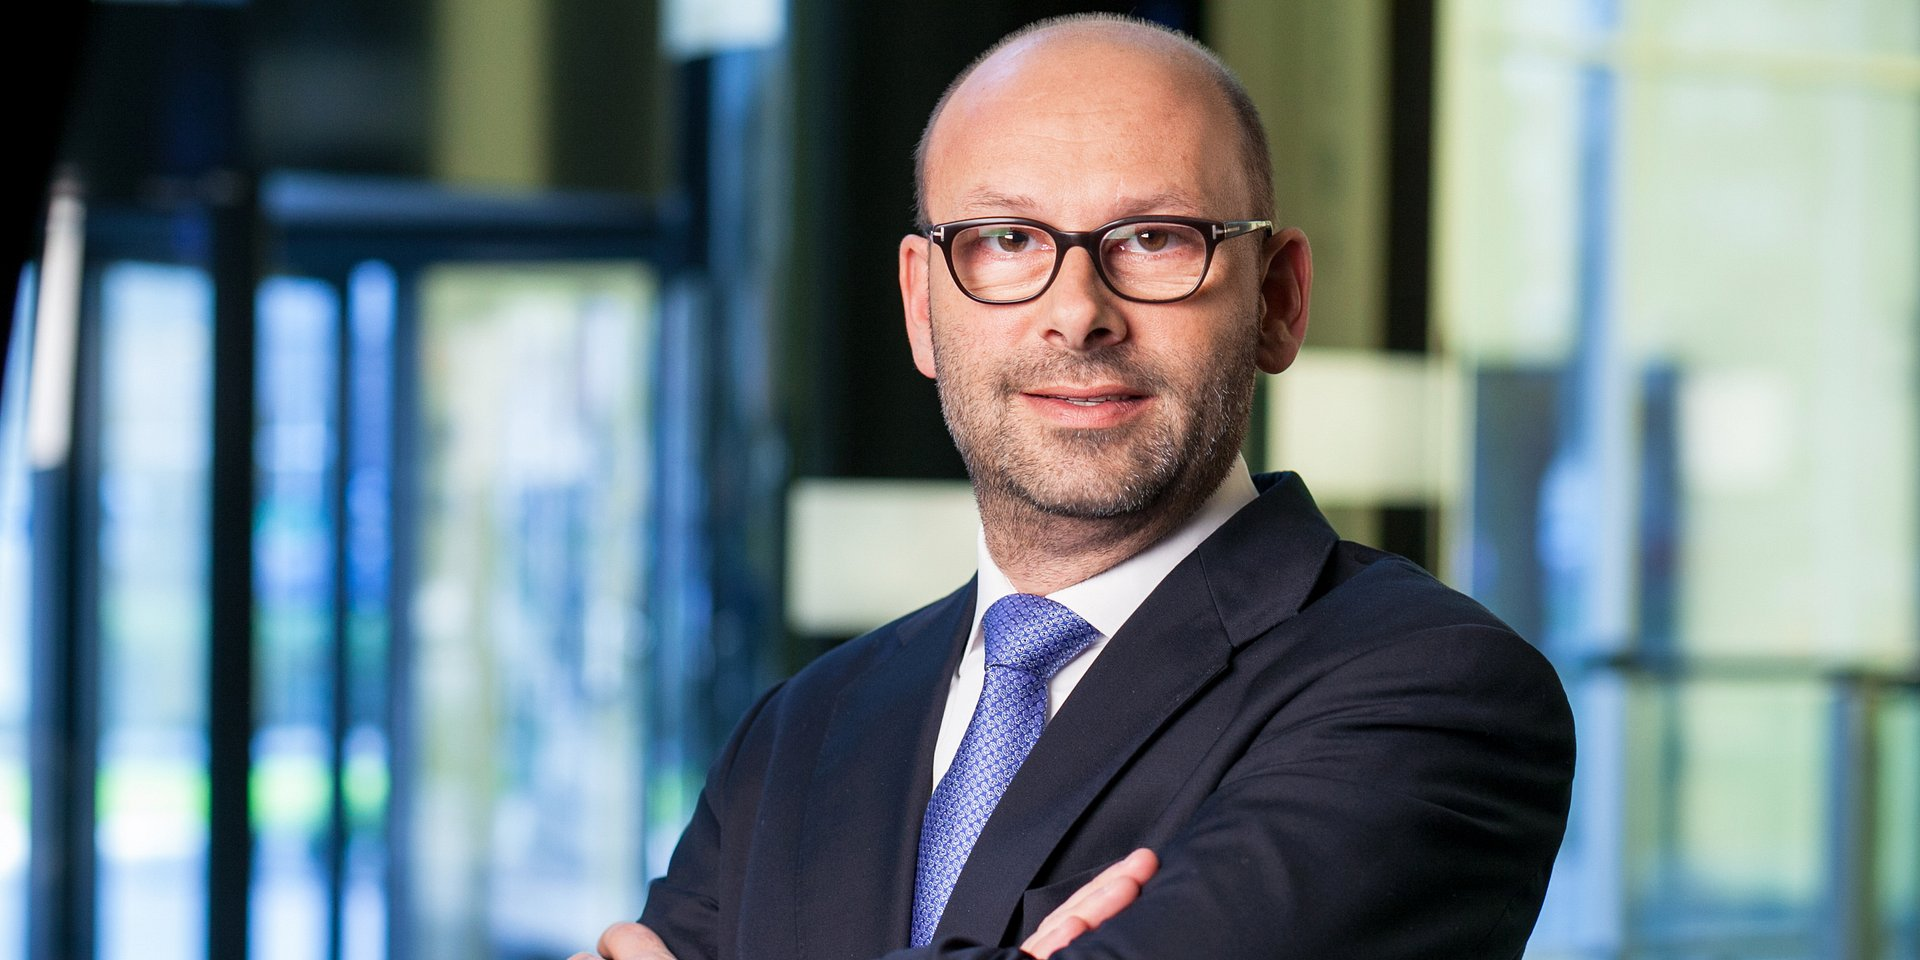 Erik Drukker appointed CEO of BNP Paribas Real Estate